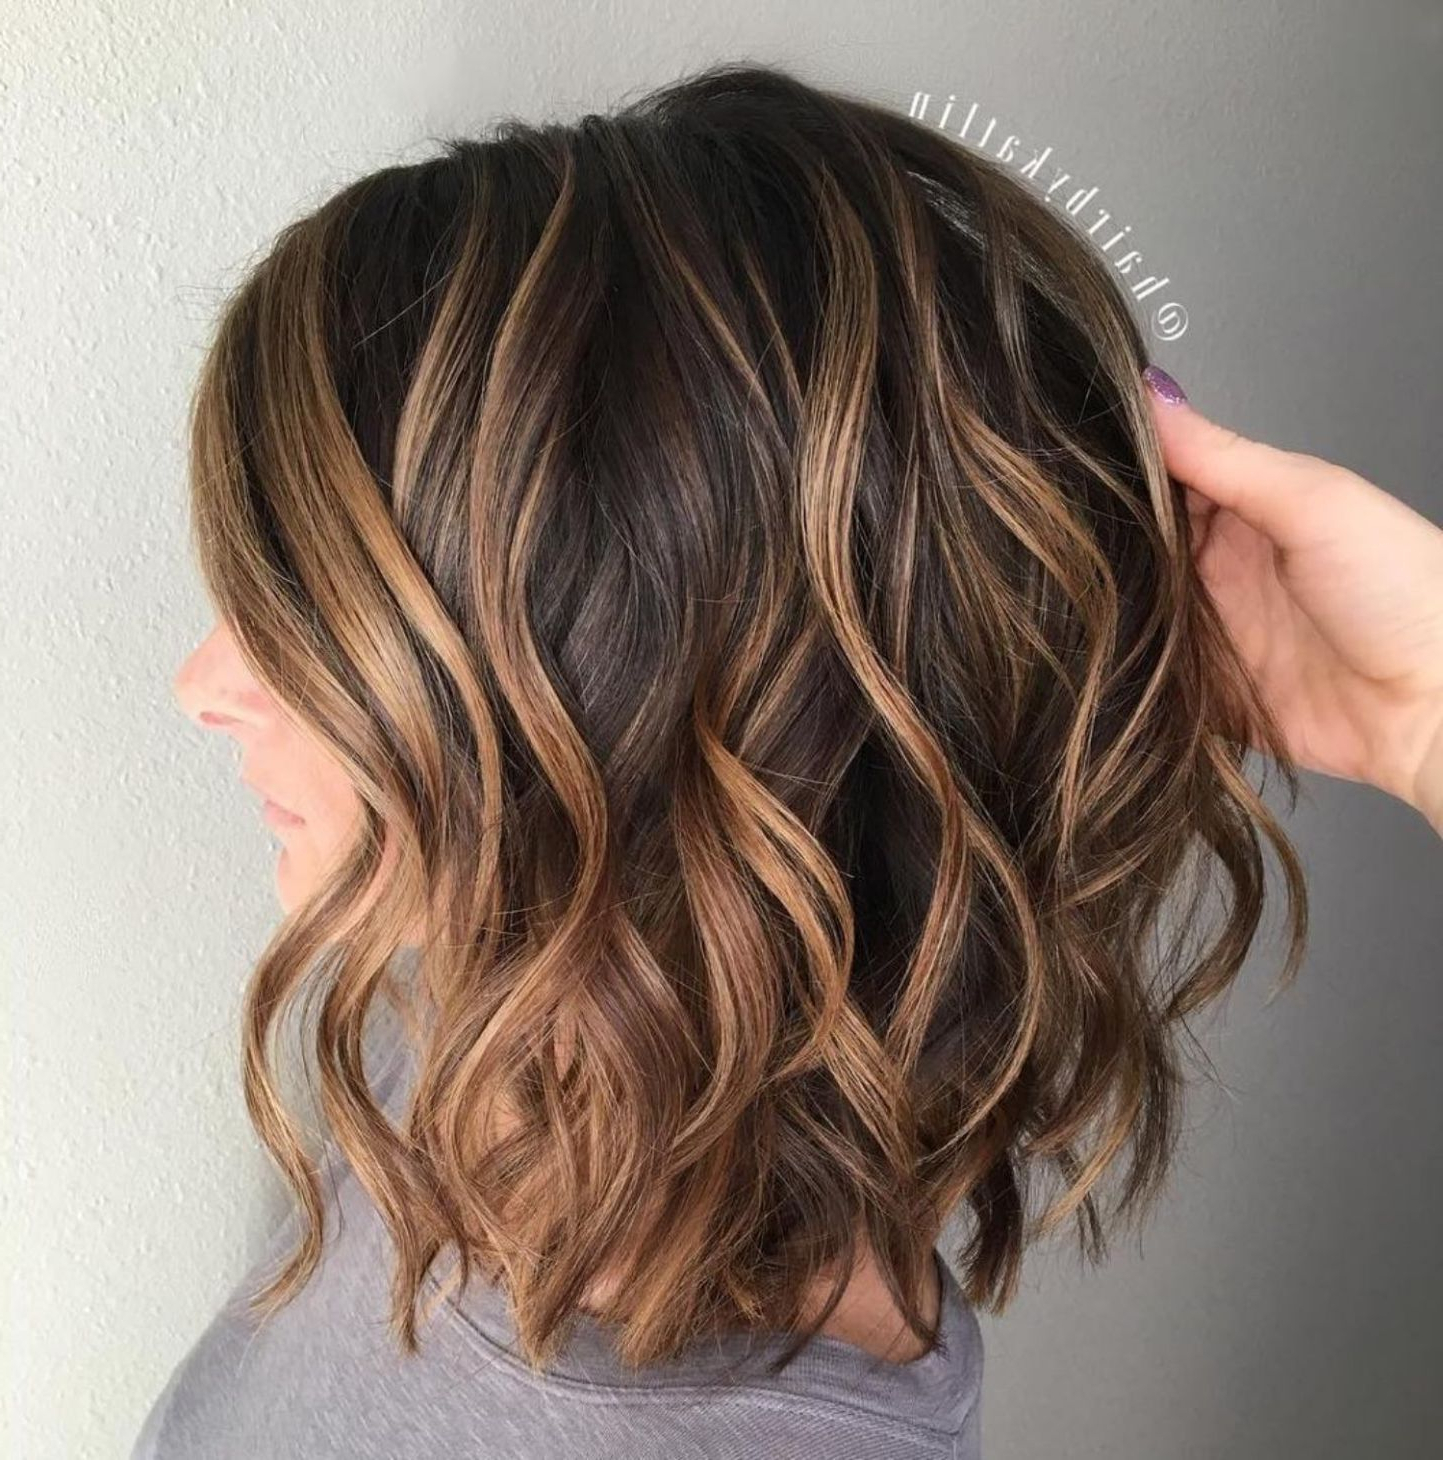 70 Brightest Medium Layered Haircuts To Light You Up In 2019 Pertaining To Textured Curly Bob Haircuts (Gallery 16 of 20)